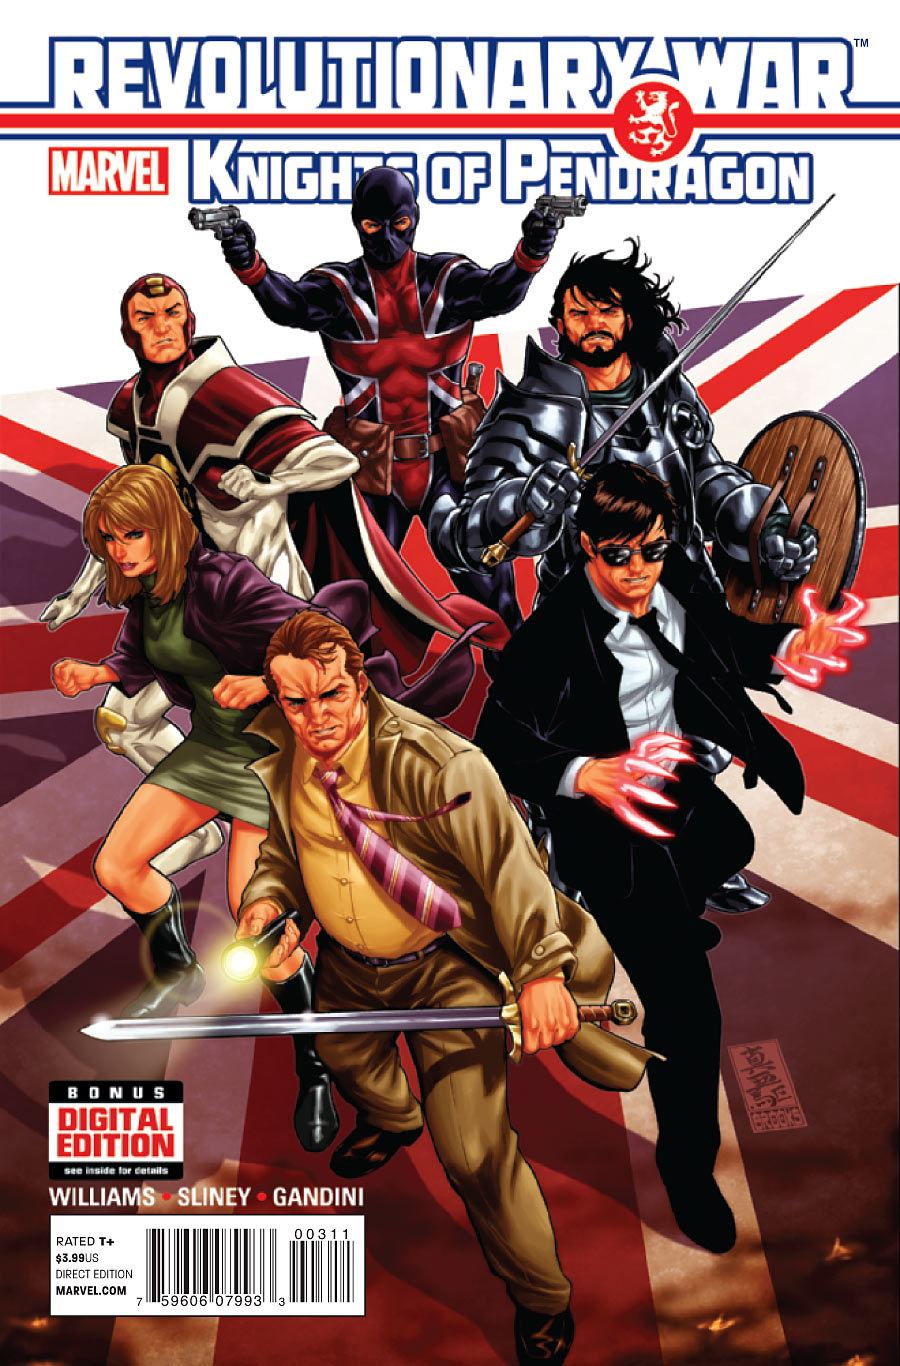 Revolutionary War: Knights of Pendragon Vol 1 1